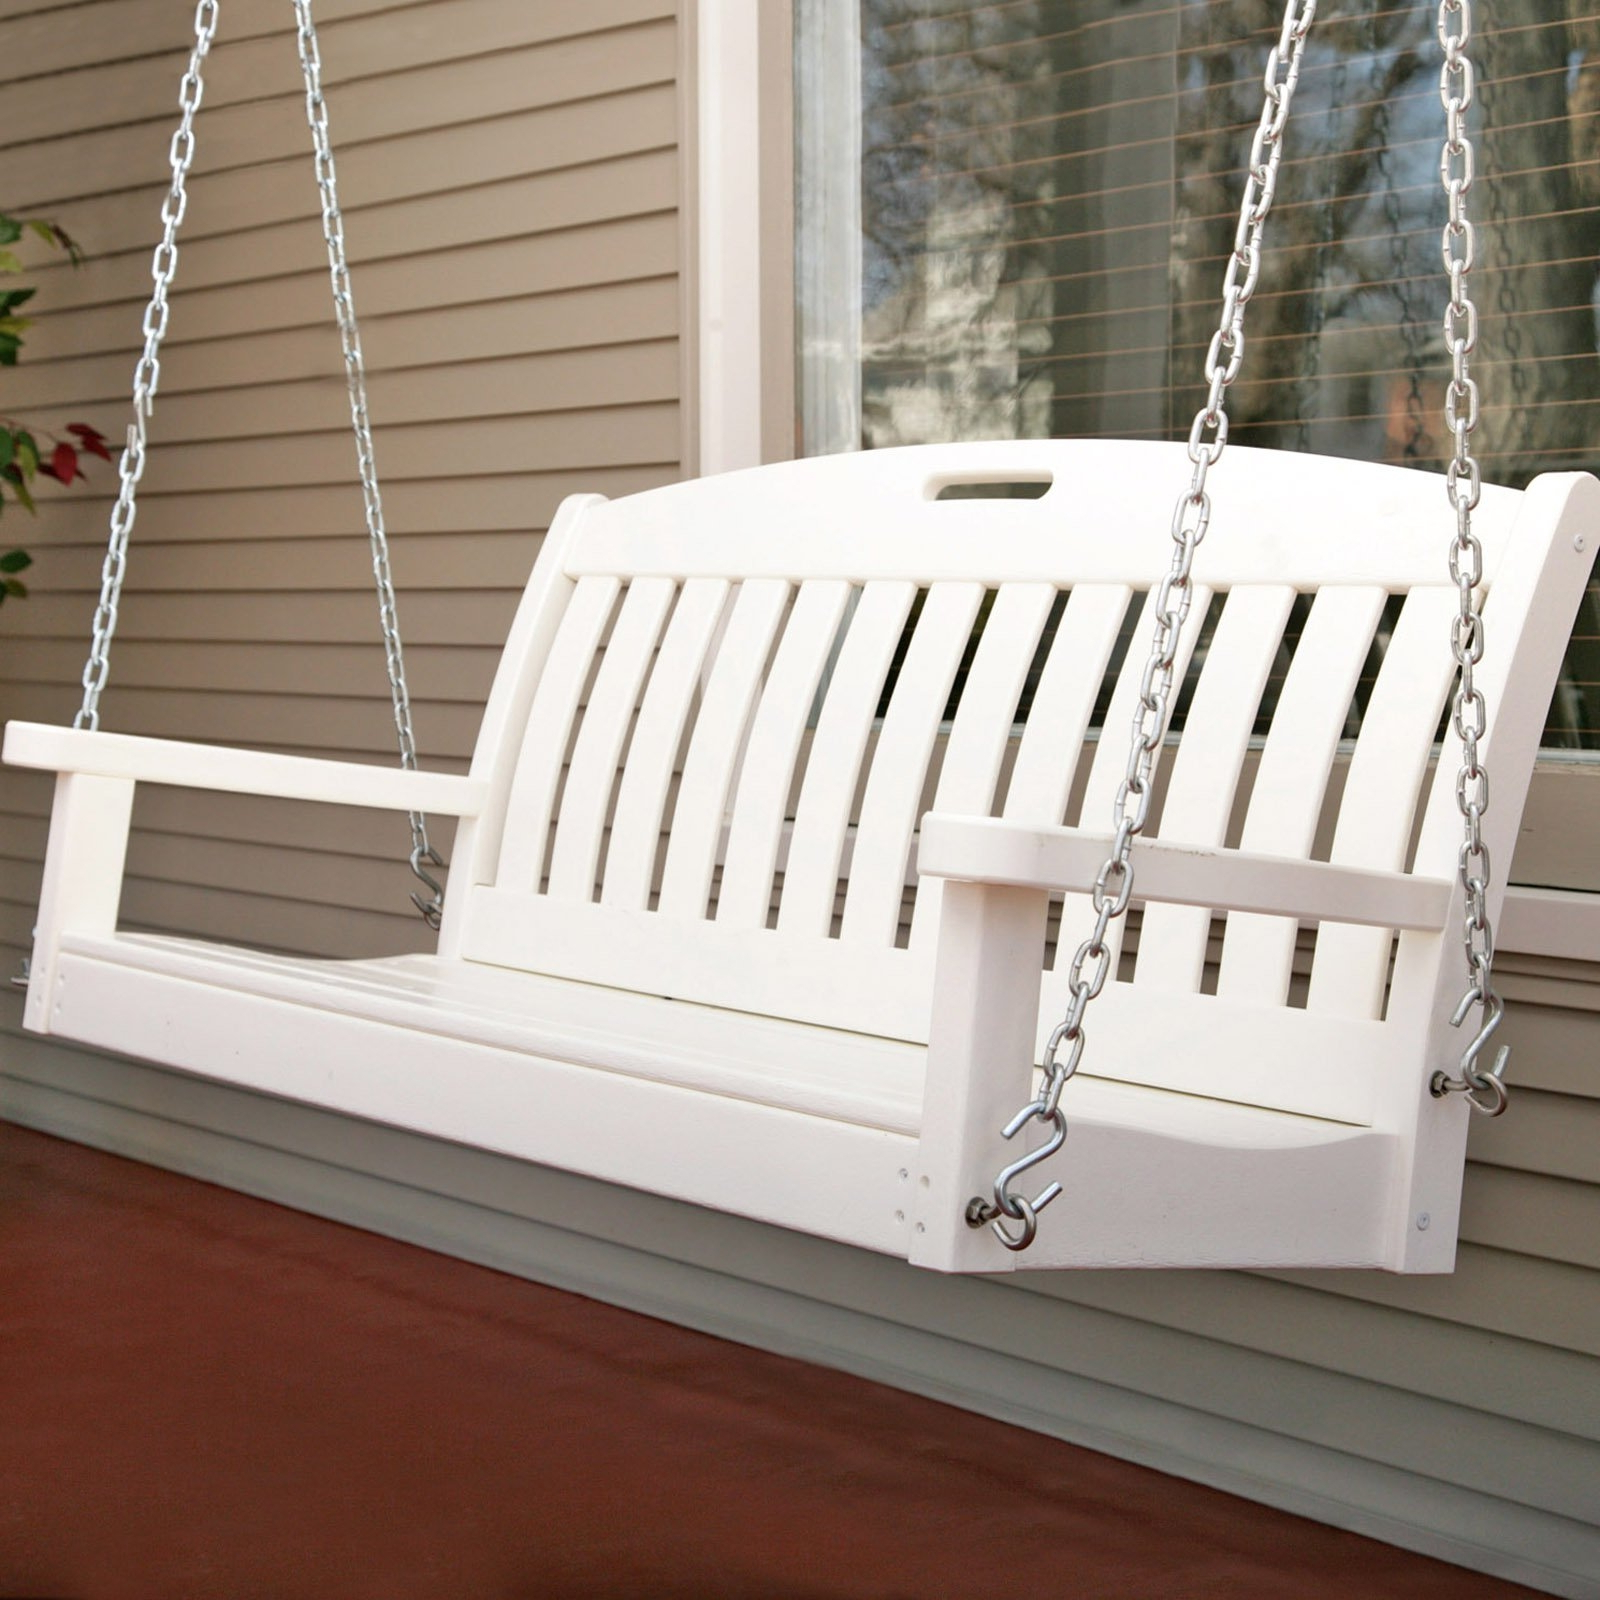 Heavy Duty Porch Swing Chain Kit Intended For Most Current Porch Swings With Chain (View 22 of 30)